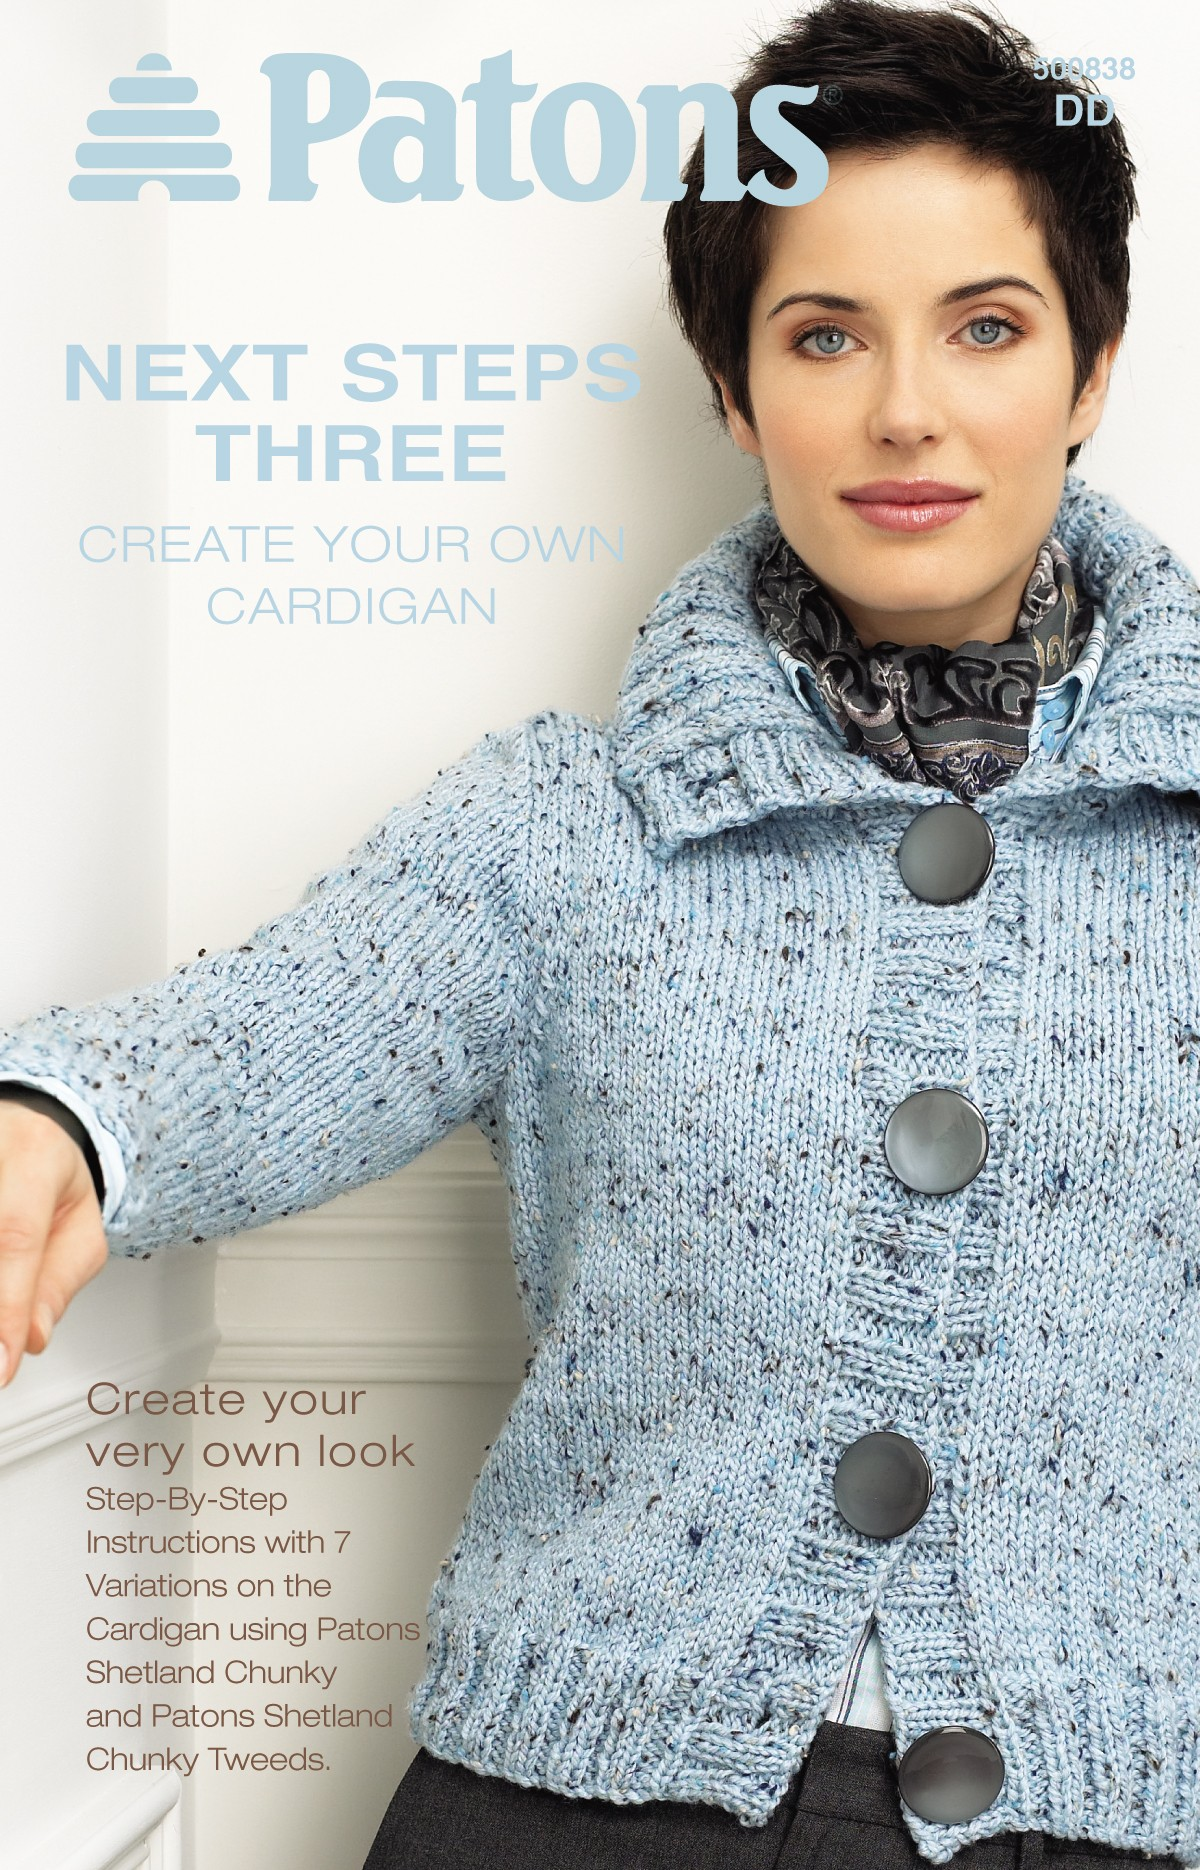 Next Steps Three - Create Your Own Cardigan